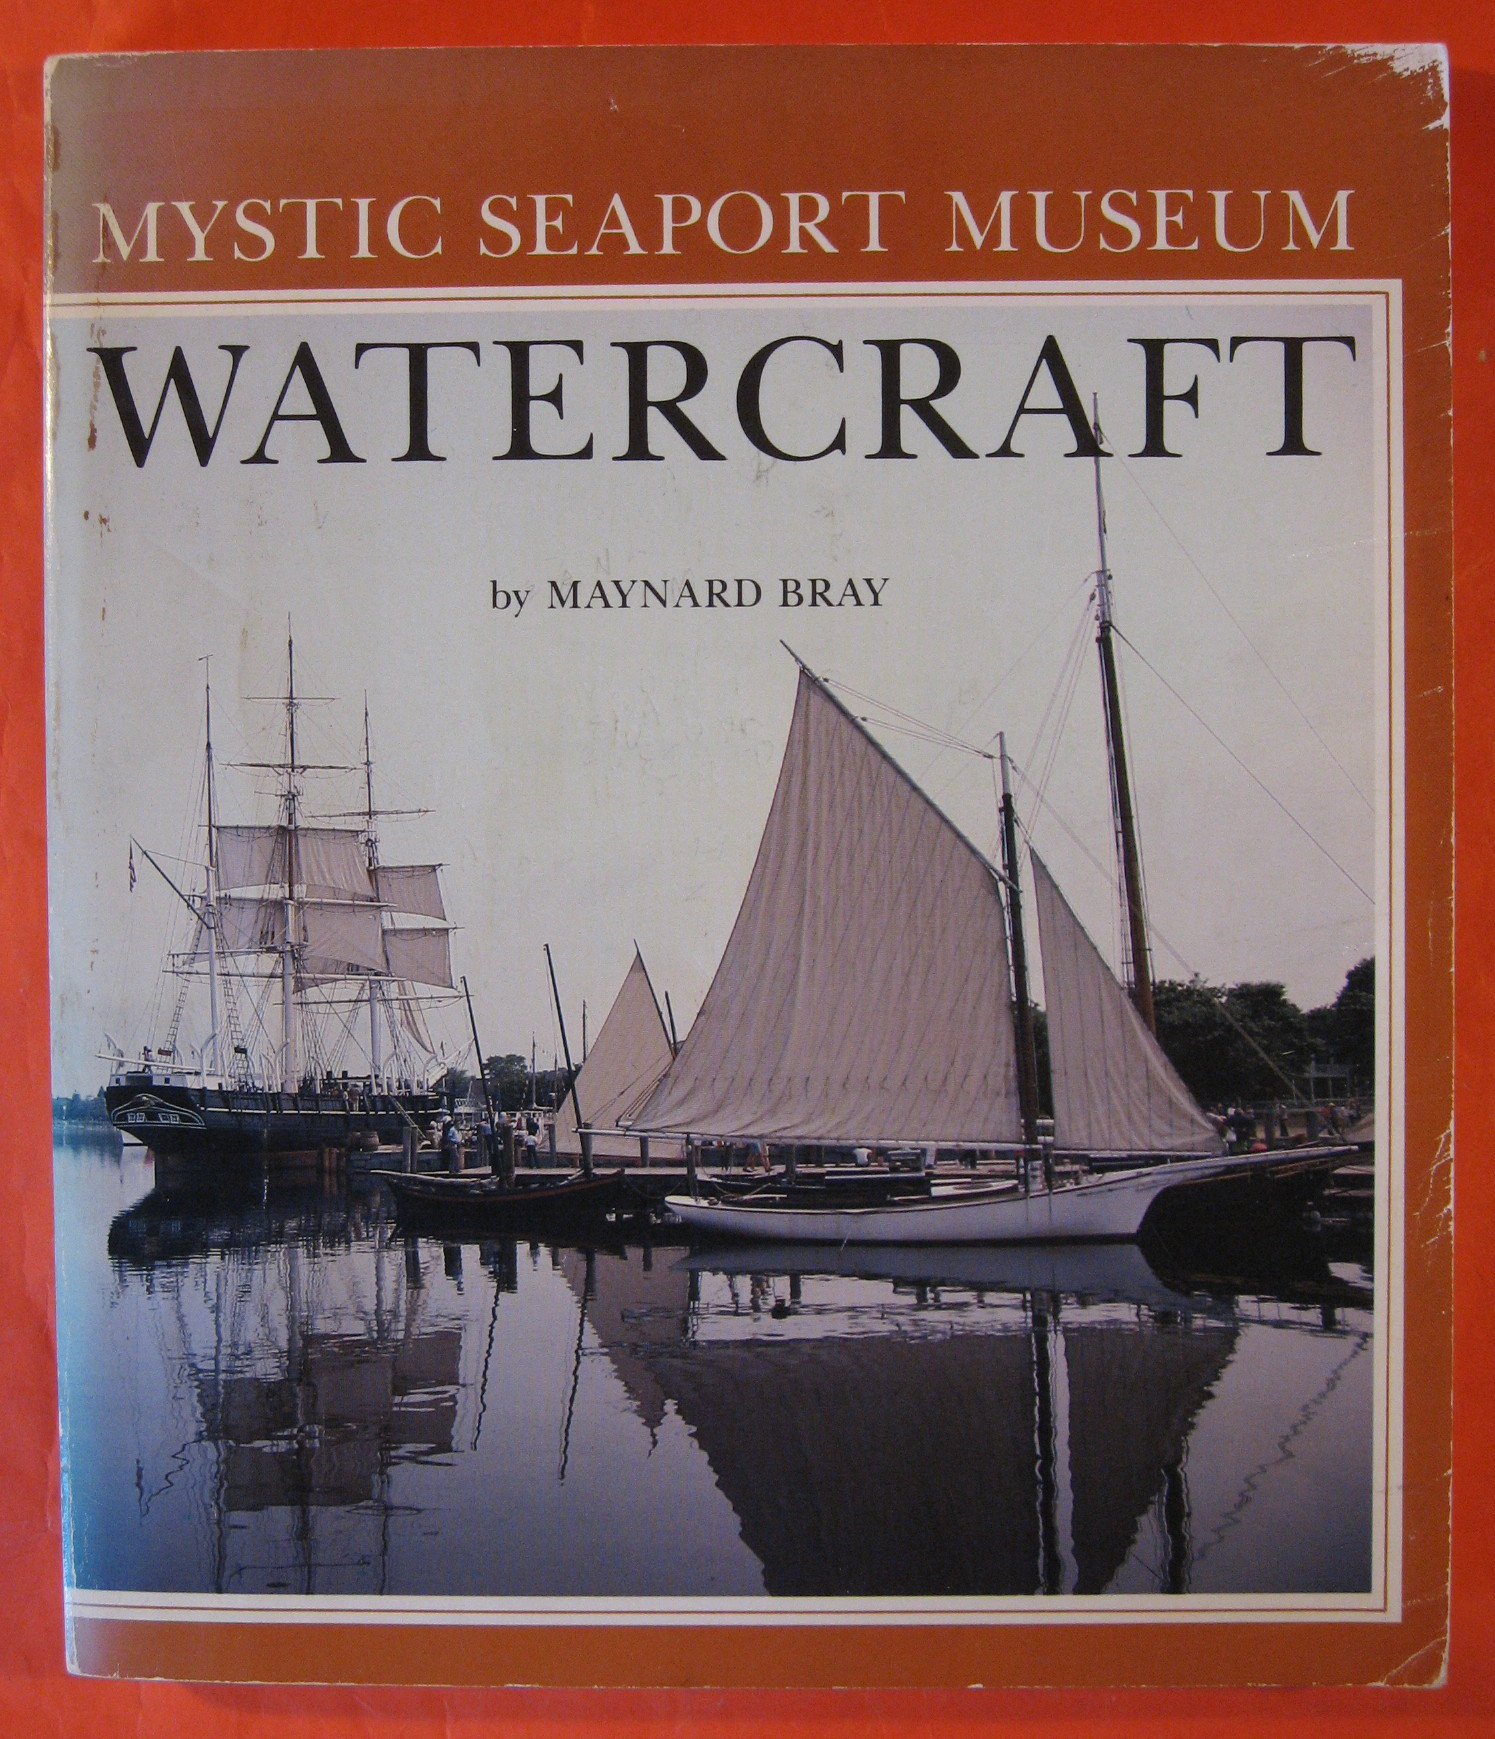 Mystic Seaport Museum Watercraft, Mystic Seaport Museum